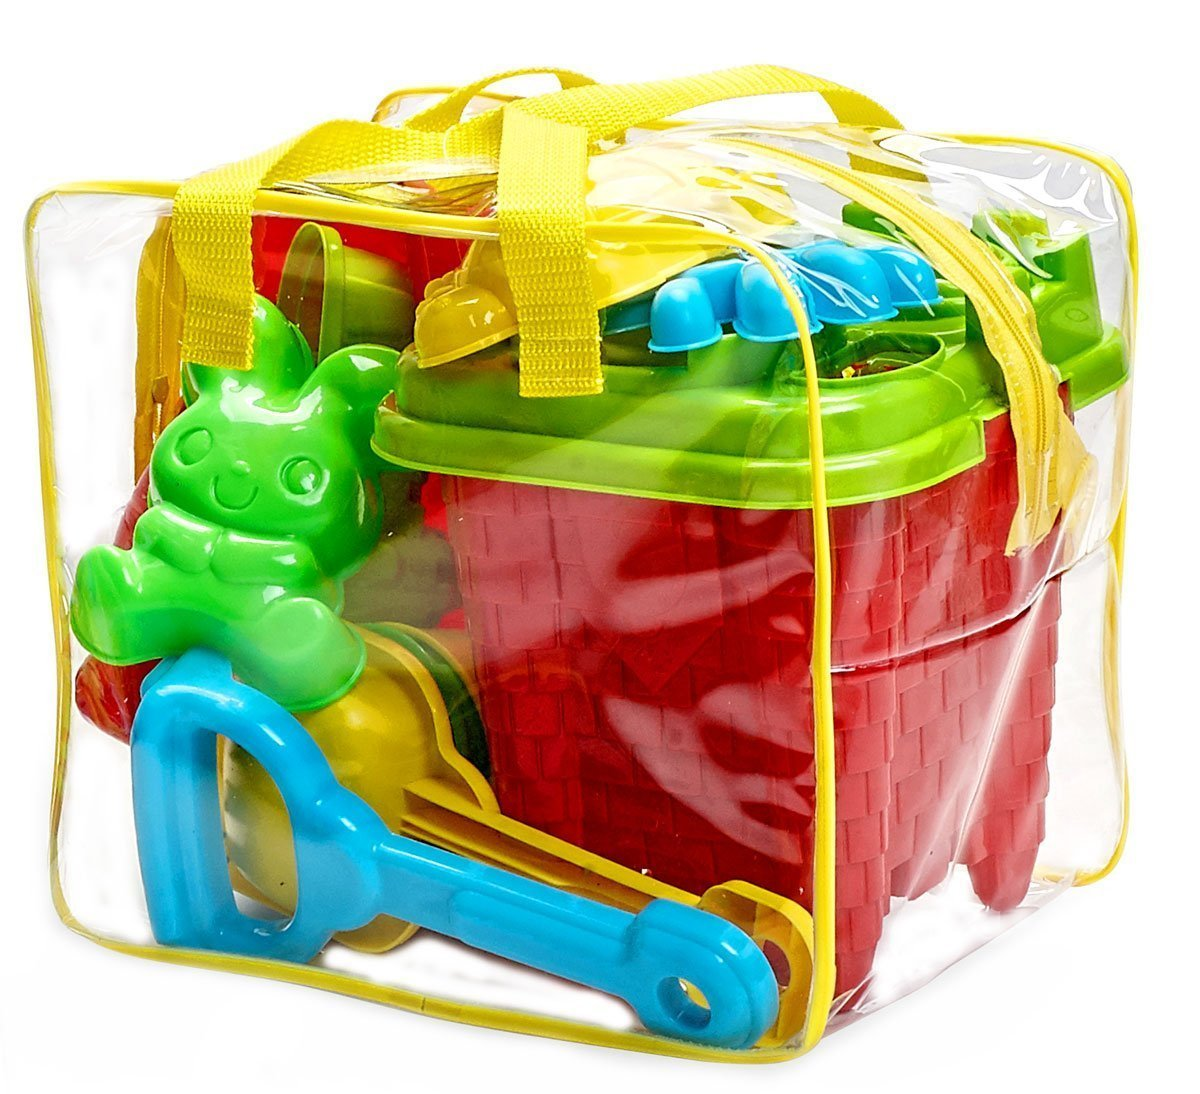 15-Pieces Beach Sand Toys Set in Zippered Bag Castle Bucket